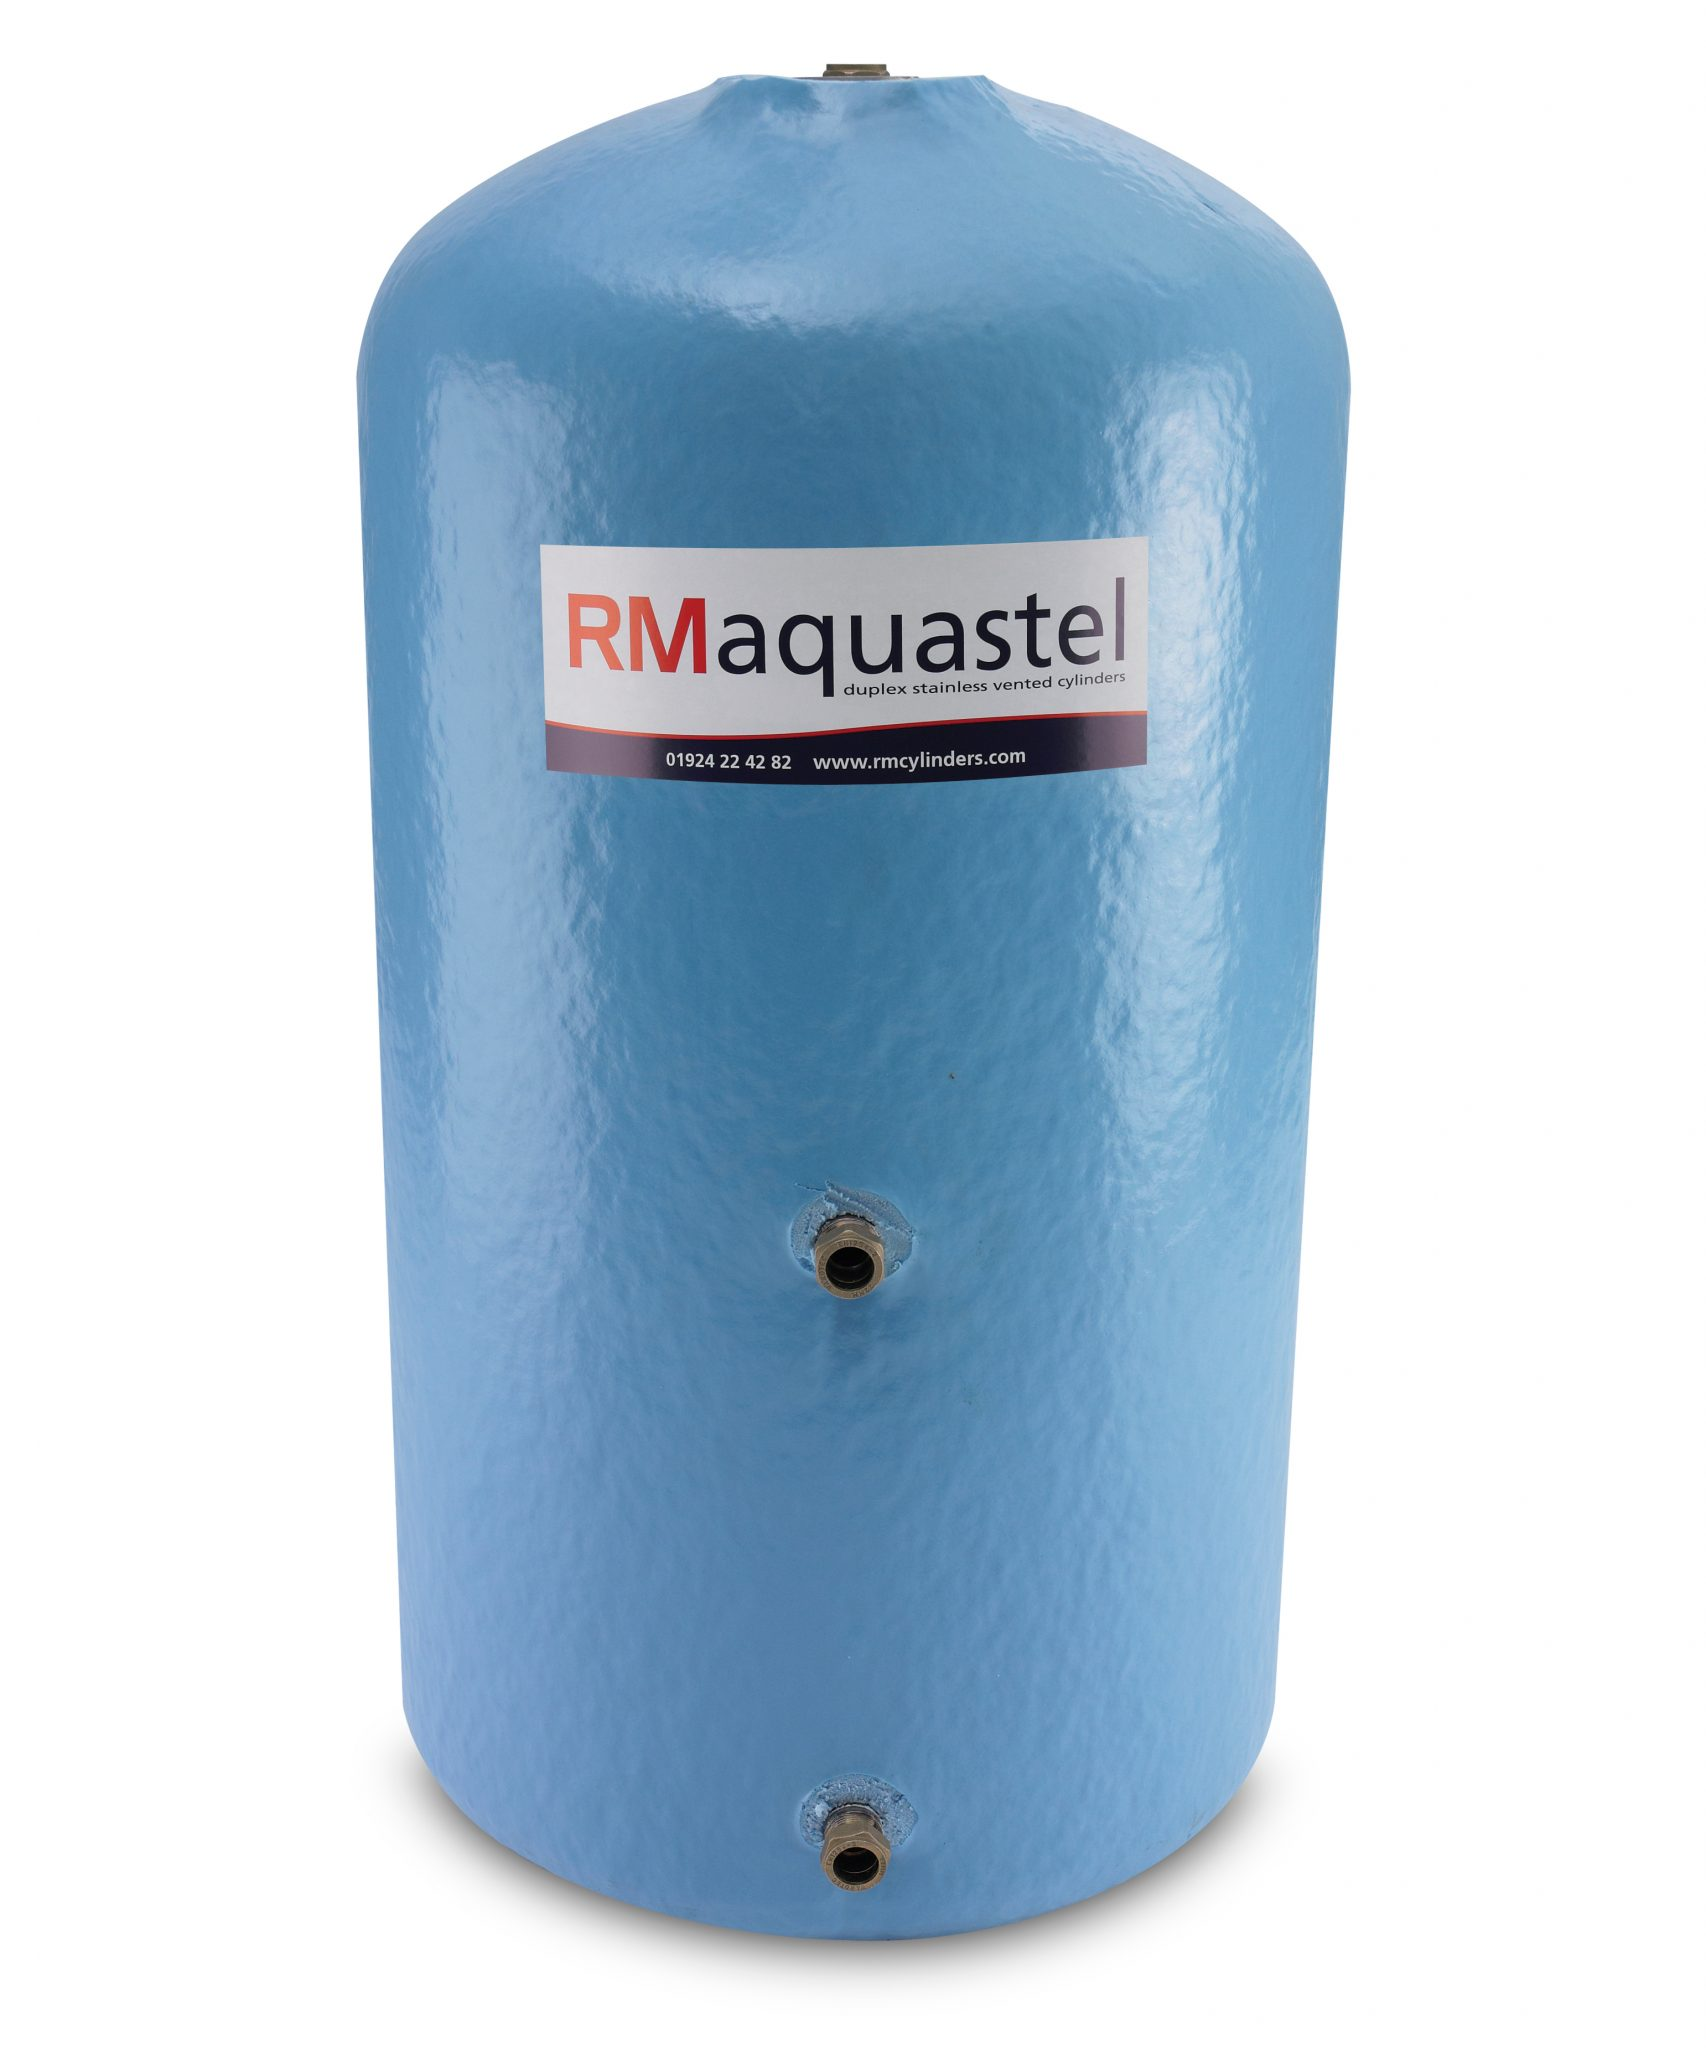 RM Aquastel 500 Vented Indirect Duplex Stainless Steel Cylinder ...